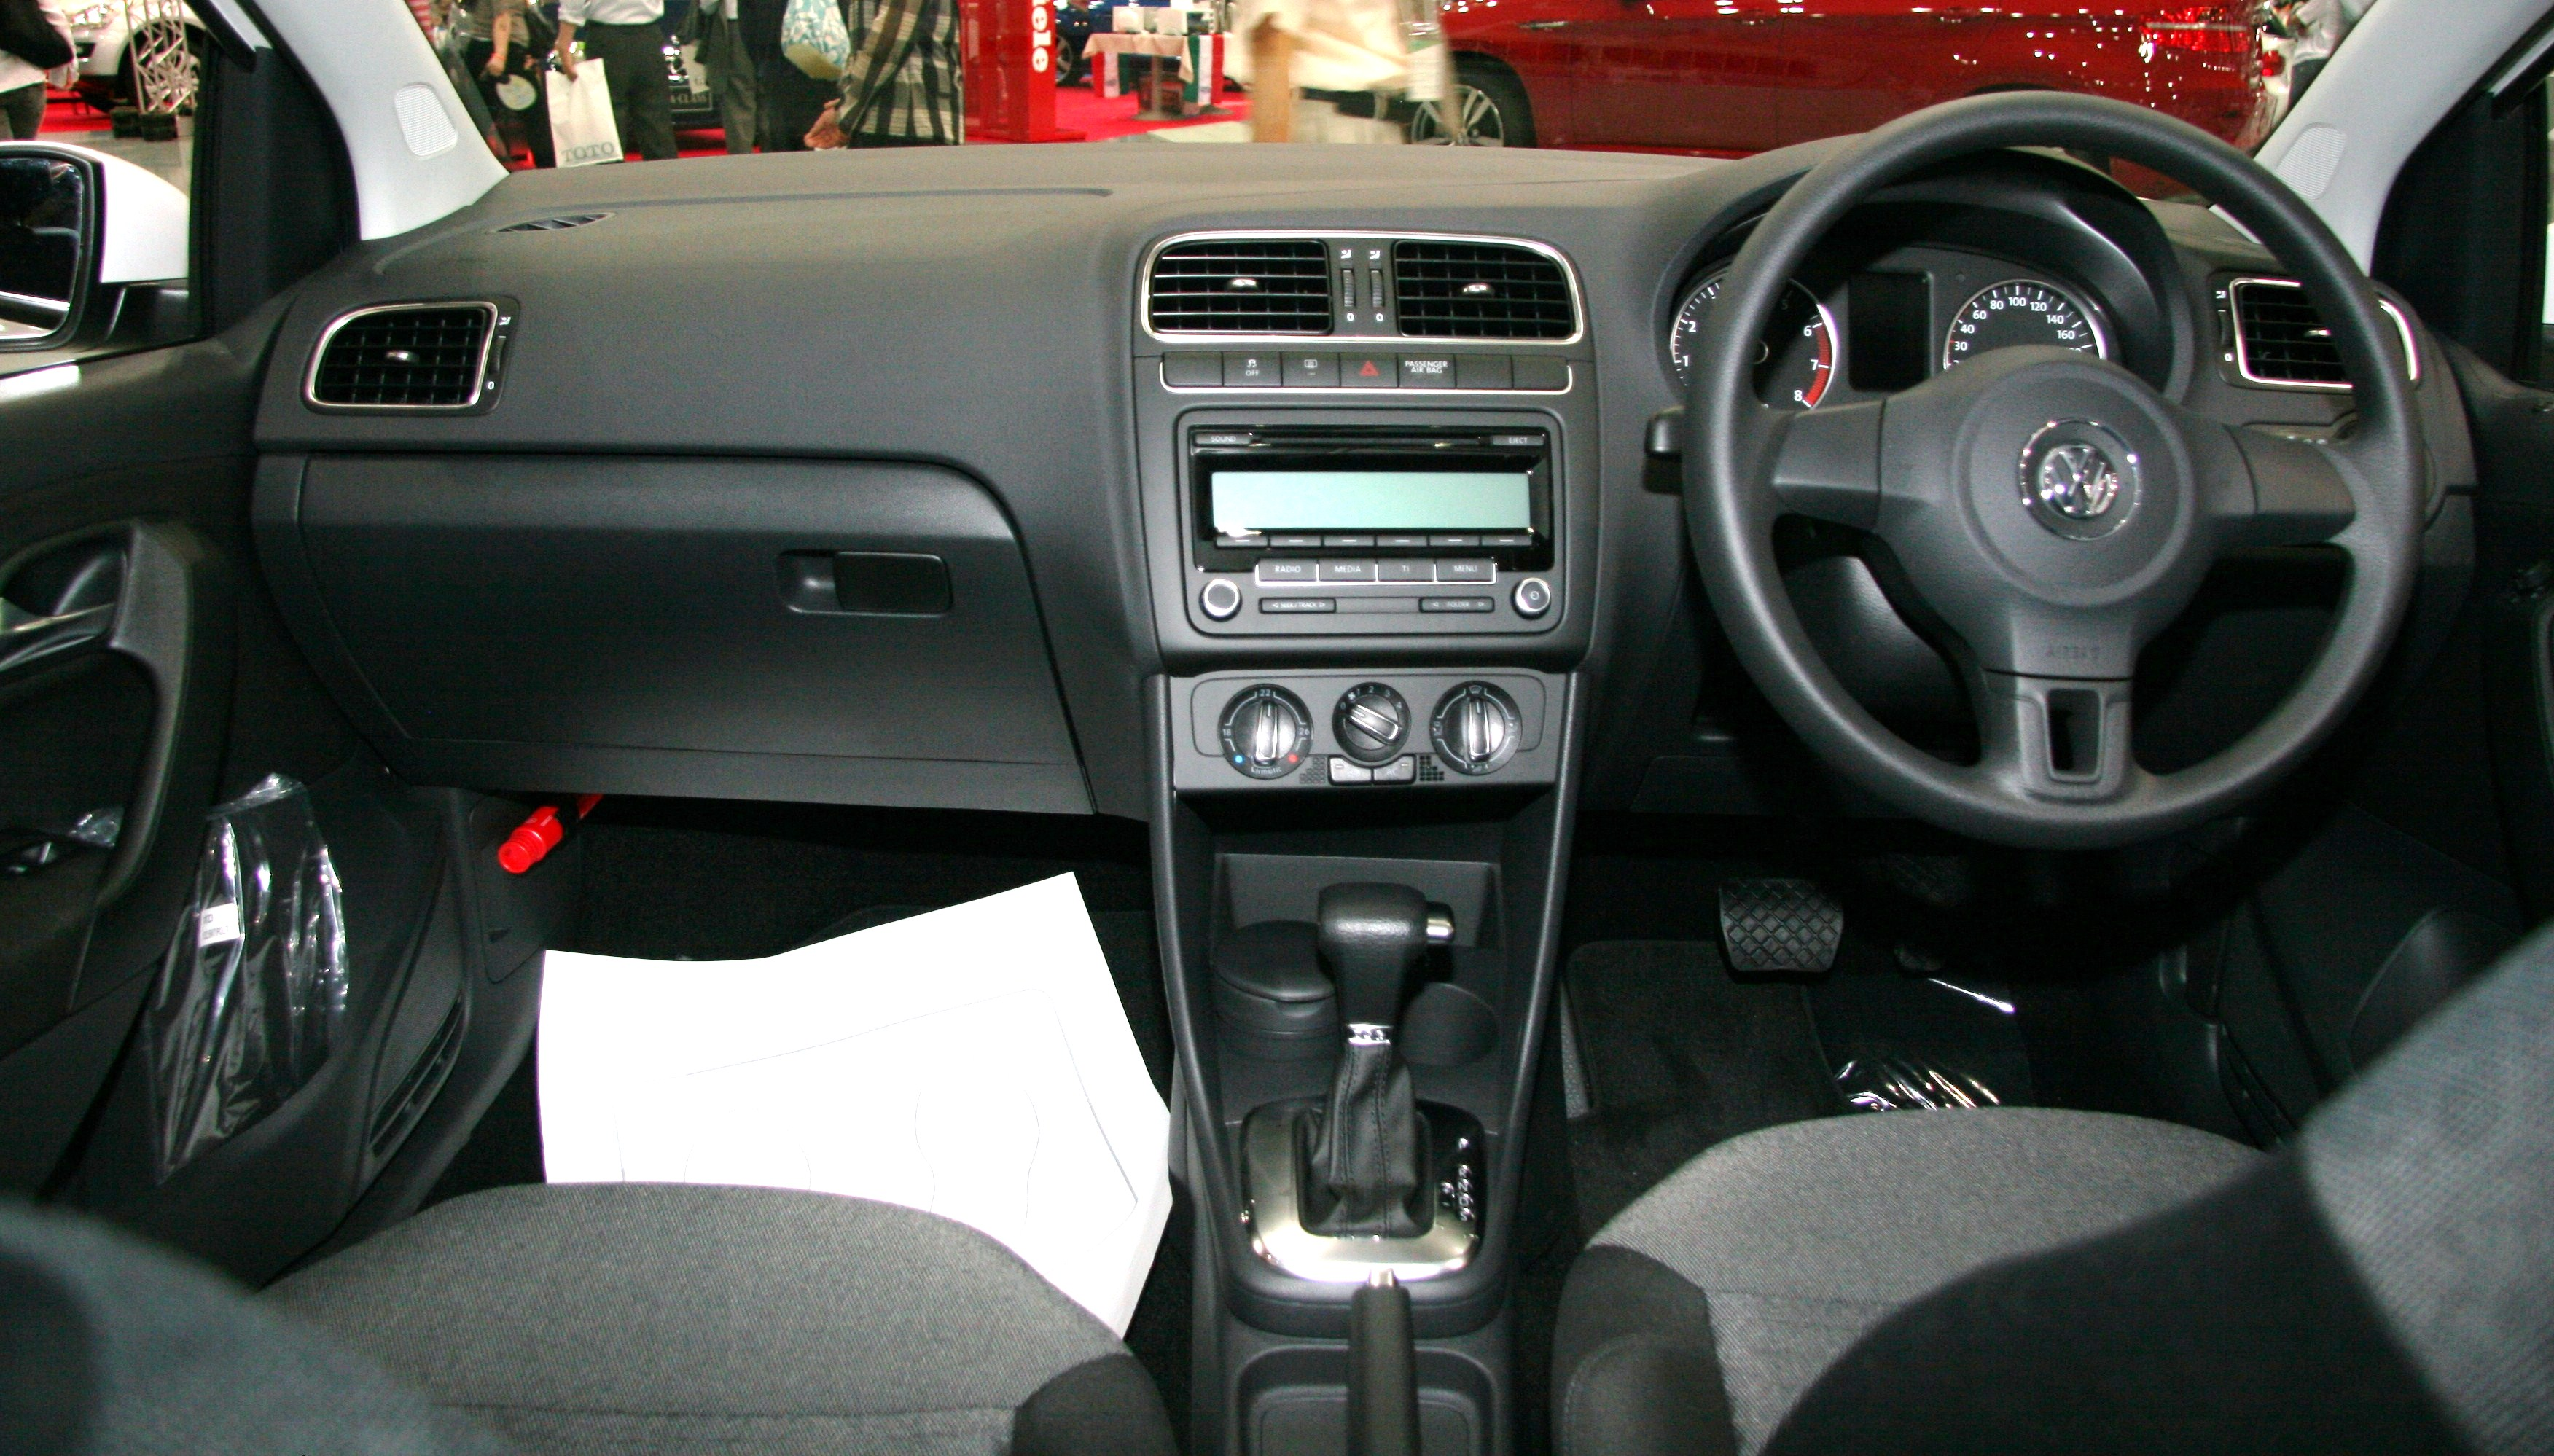 File:Volkswagen Polo V interior.jpg - Wikimedia Commons